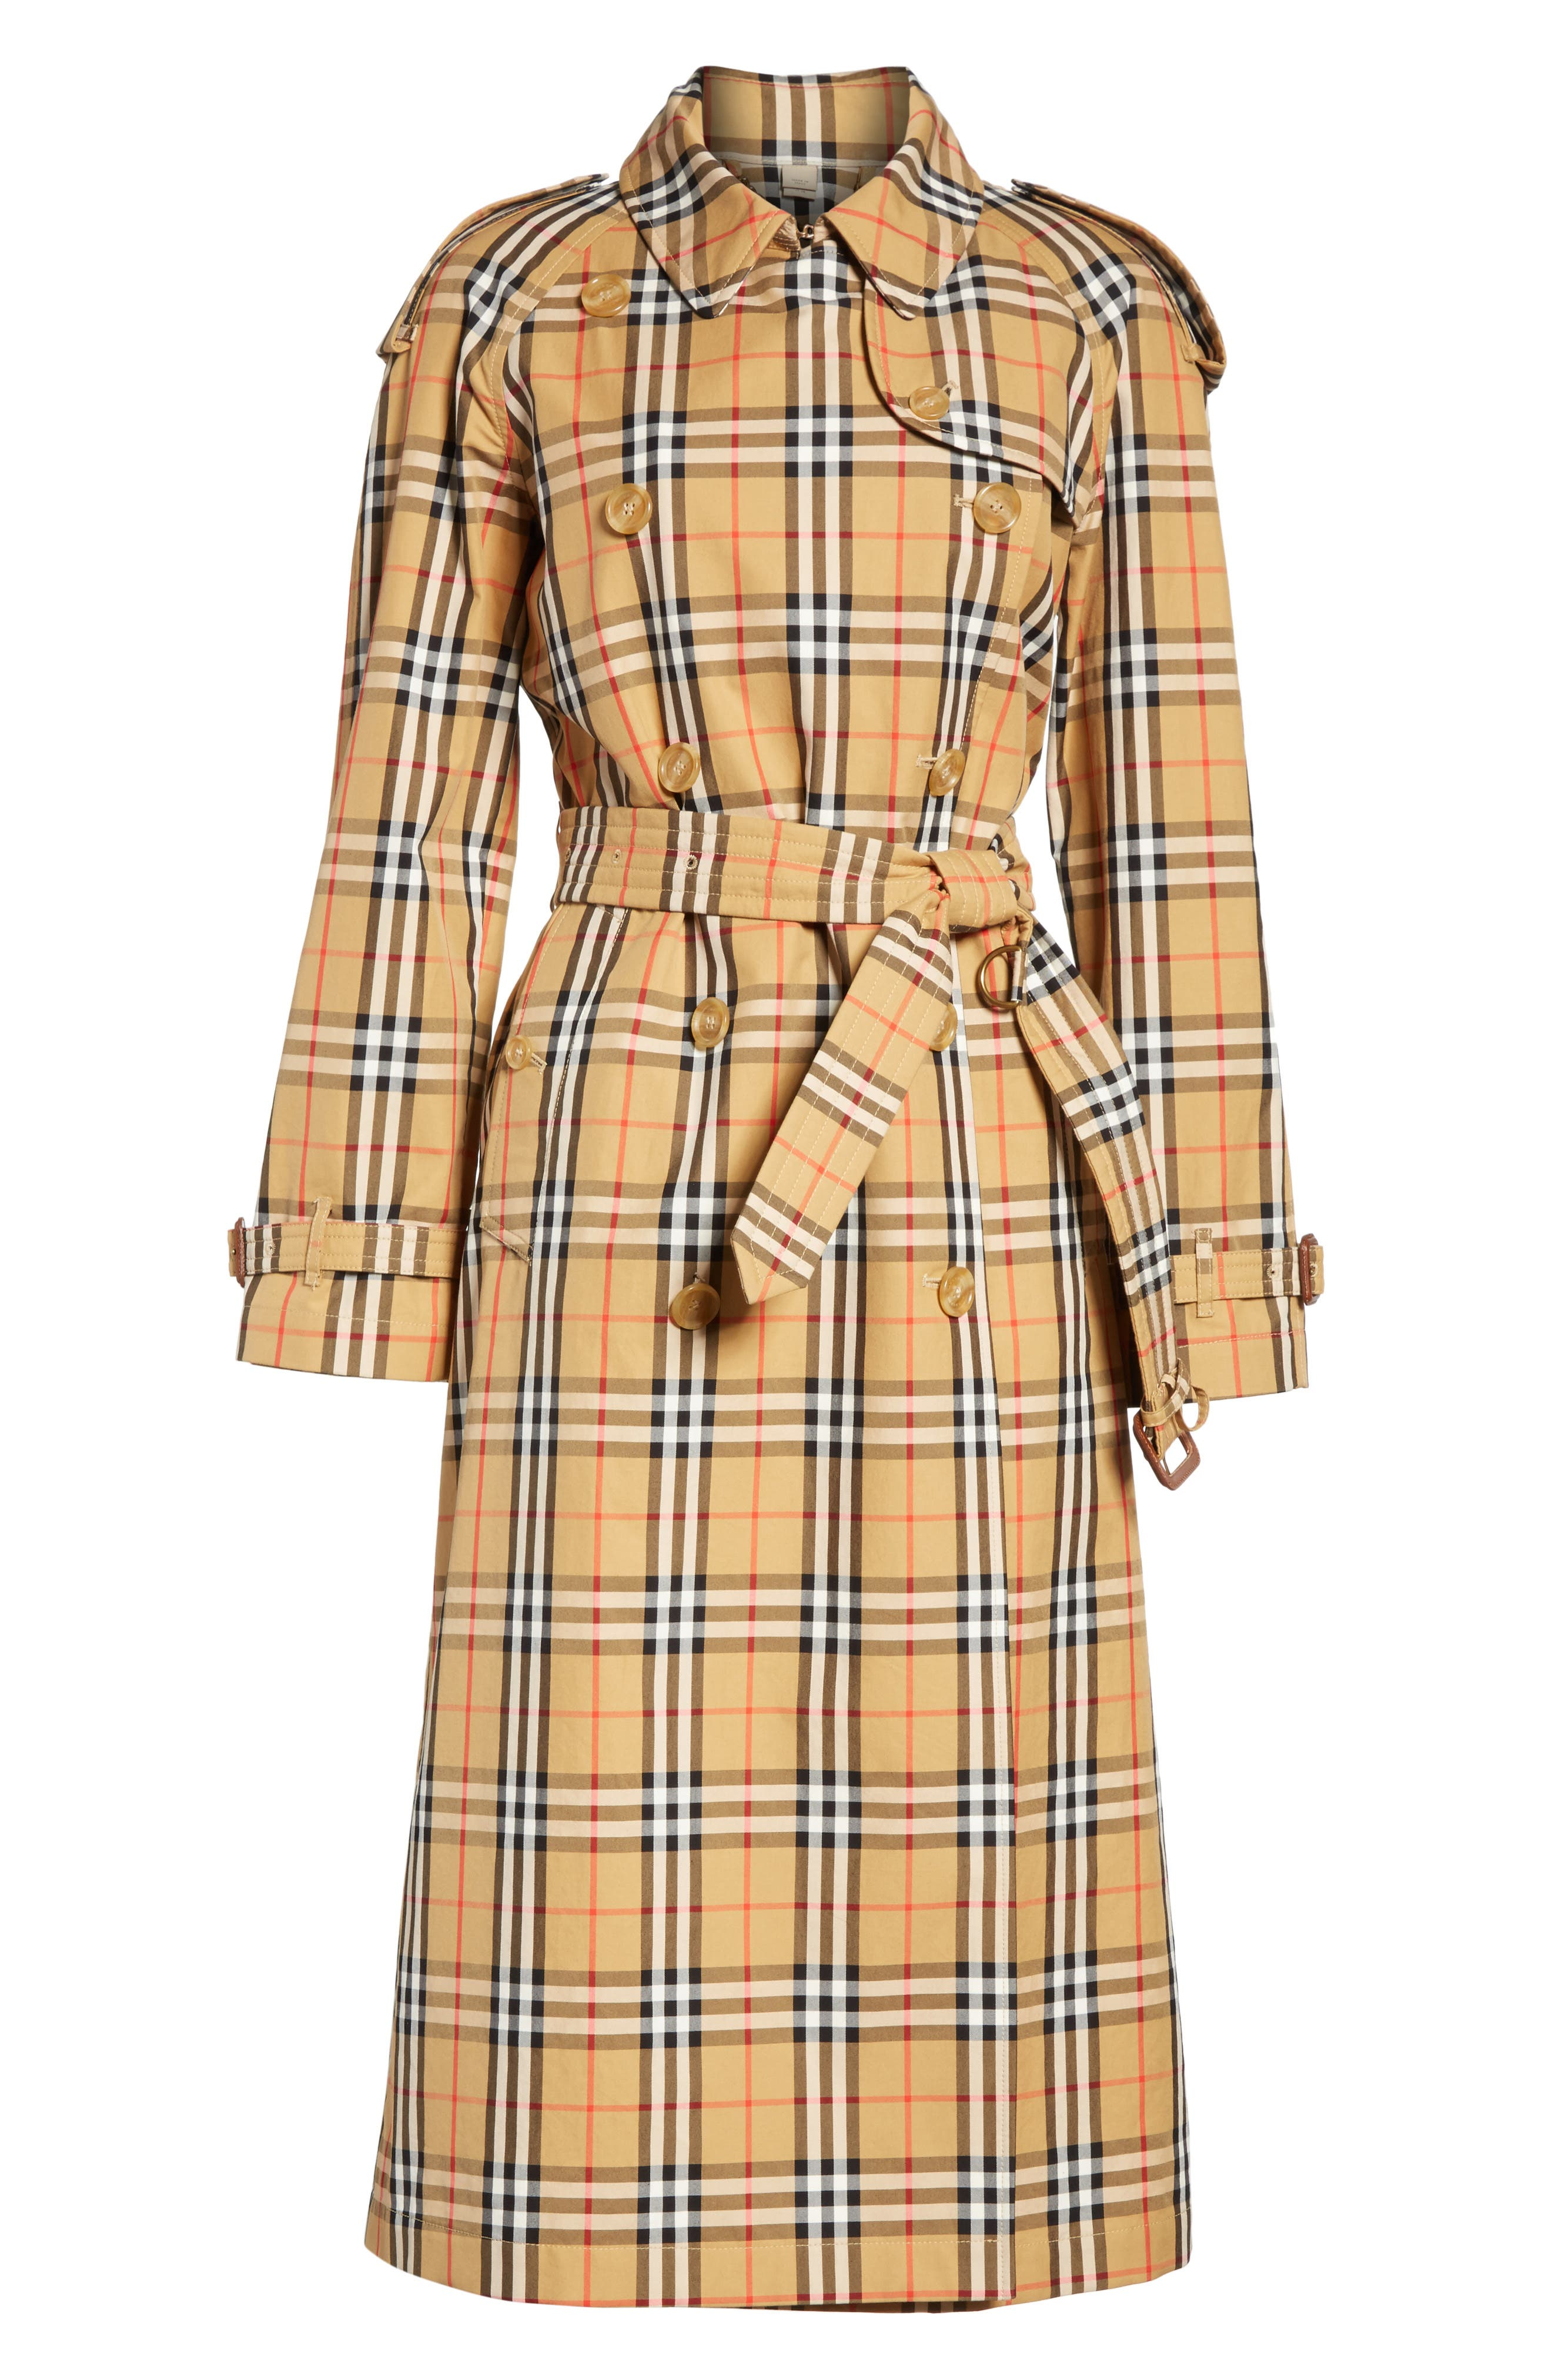 BURBERRY, Eastheath Vintage Check Trench Coat, Alternate thumbnail 6, color, ANTIQUE YELLOW